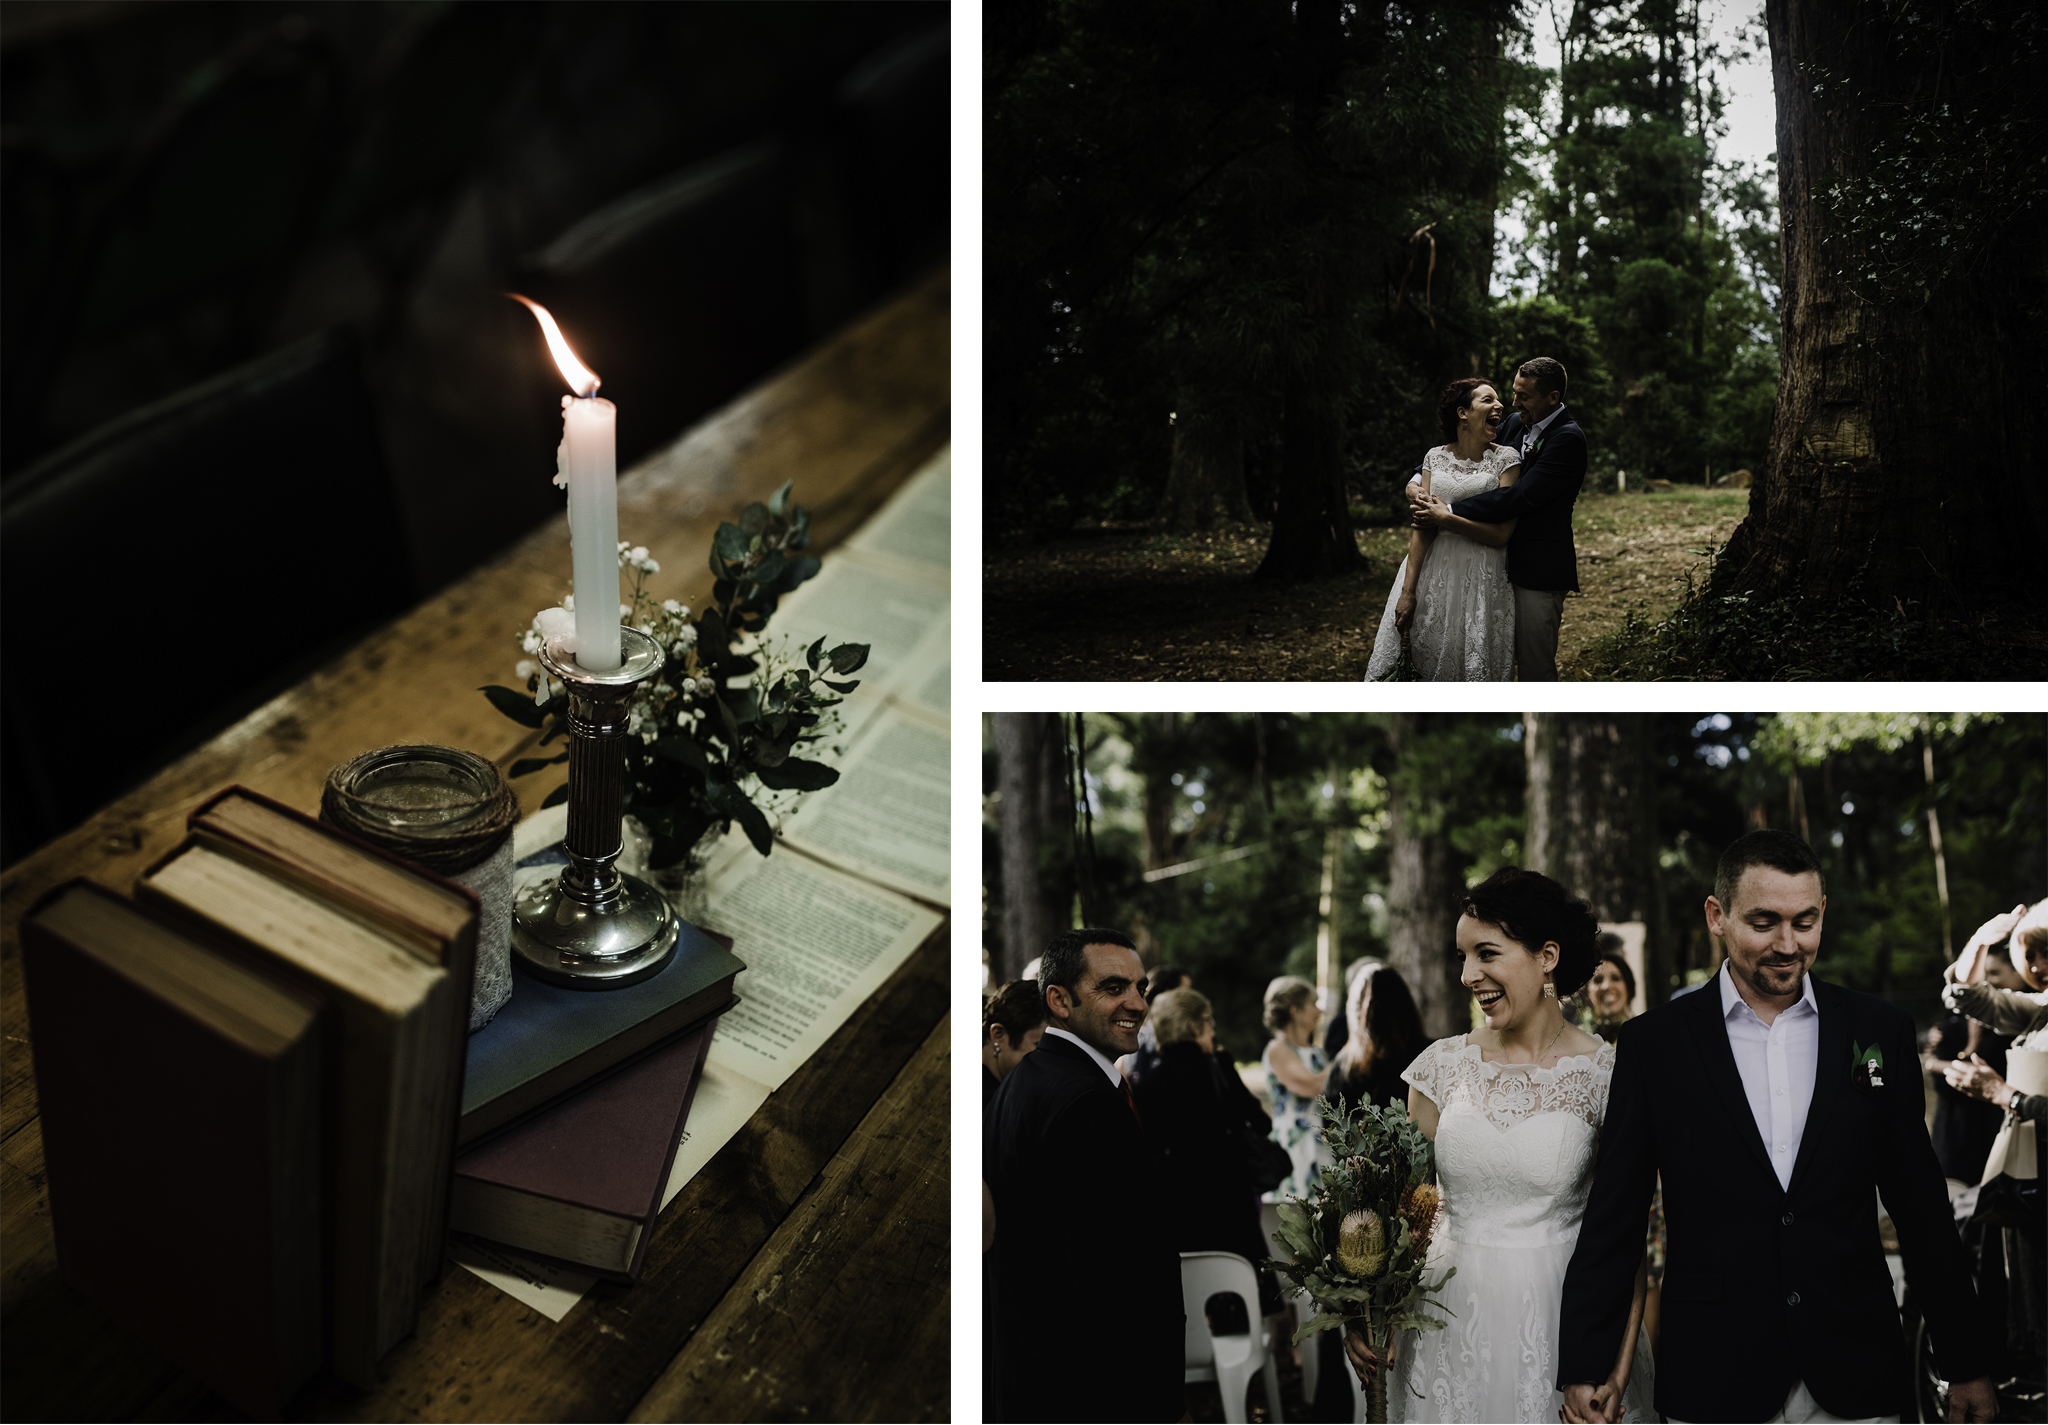 Norway wedding and elopement photographer - 23.jpg